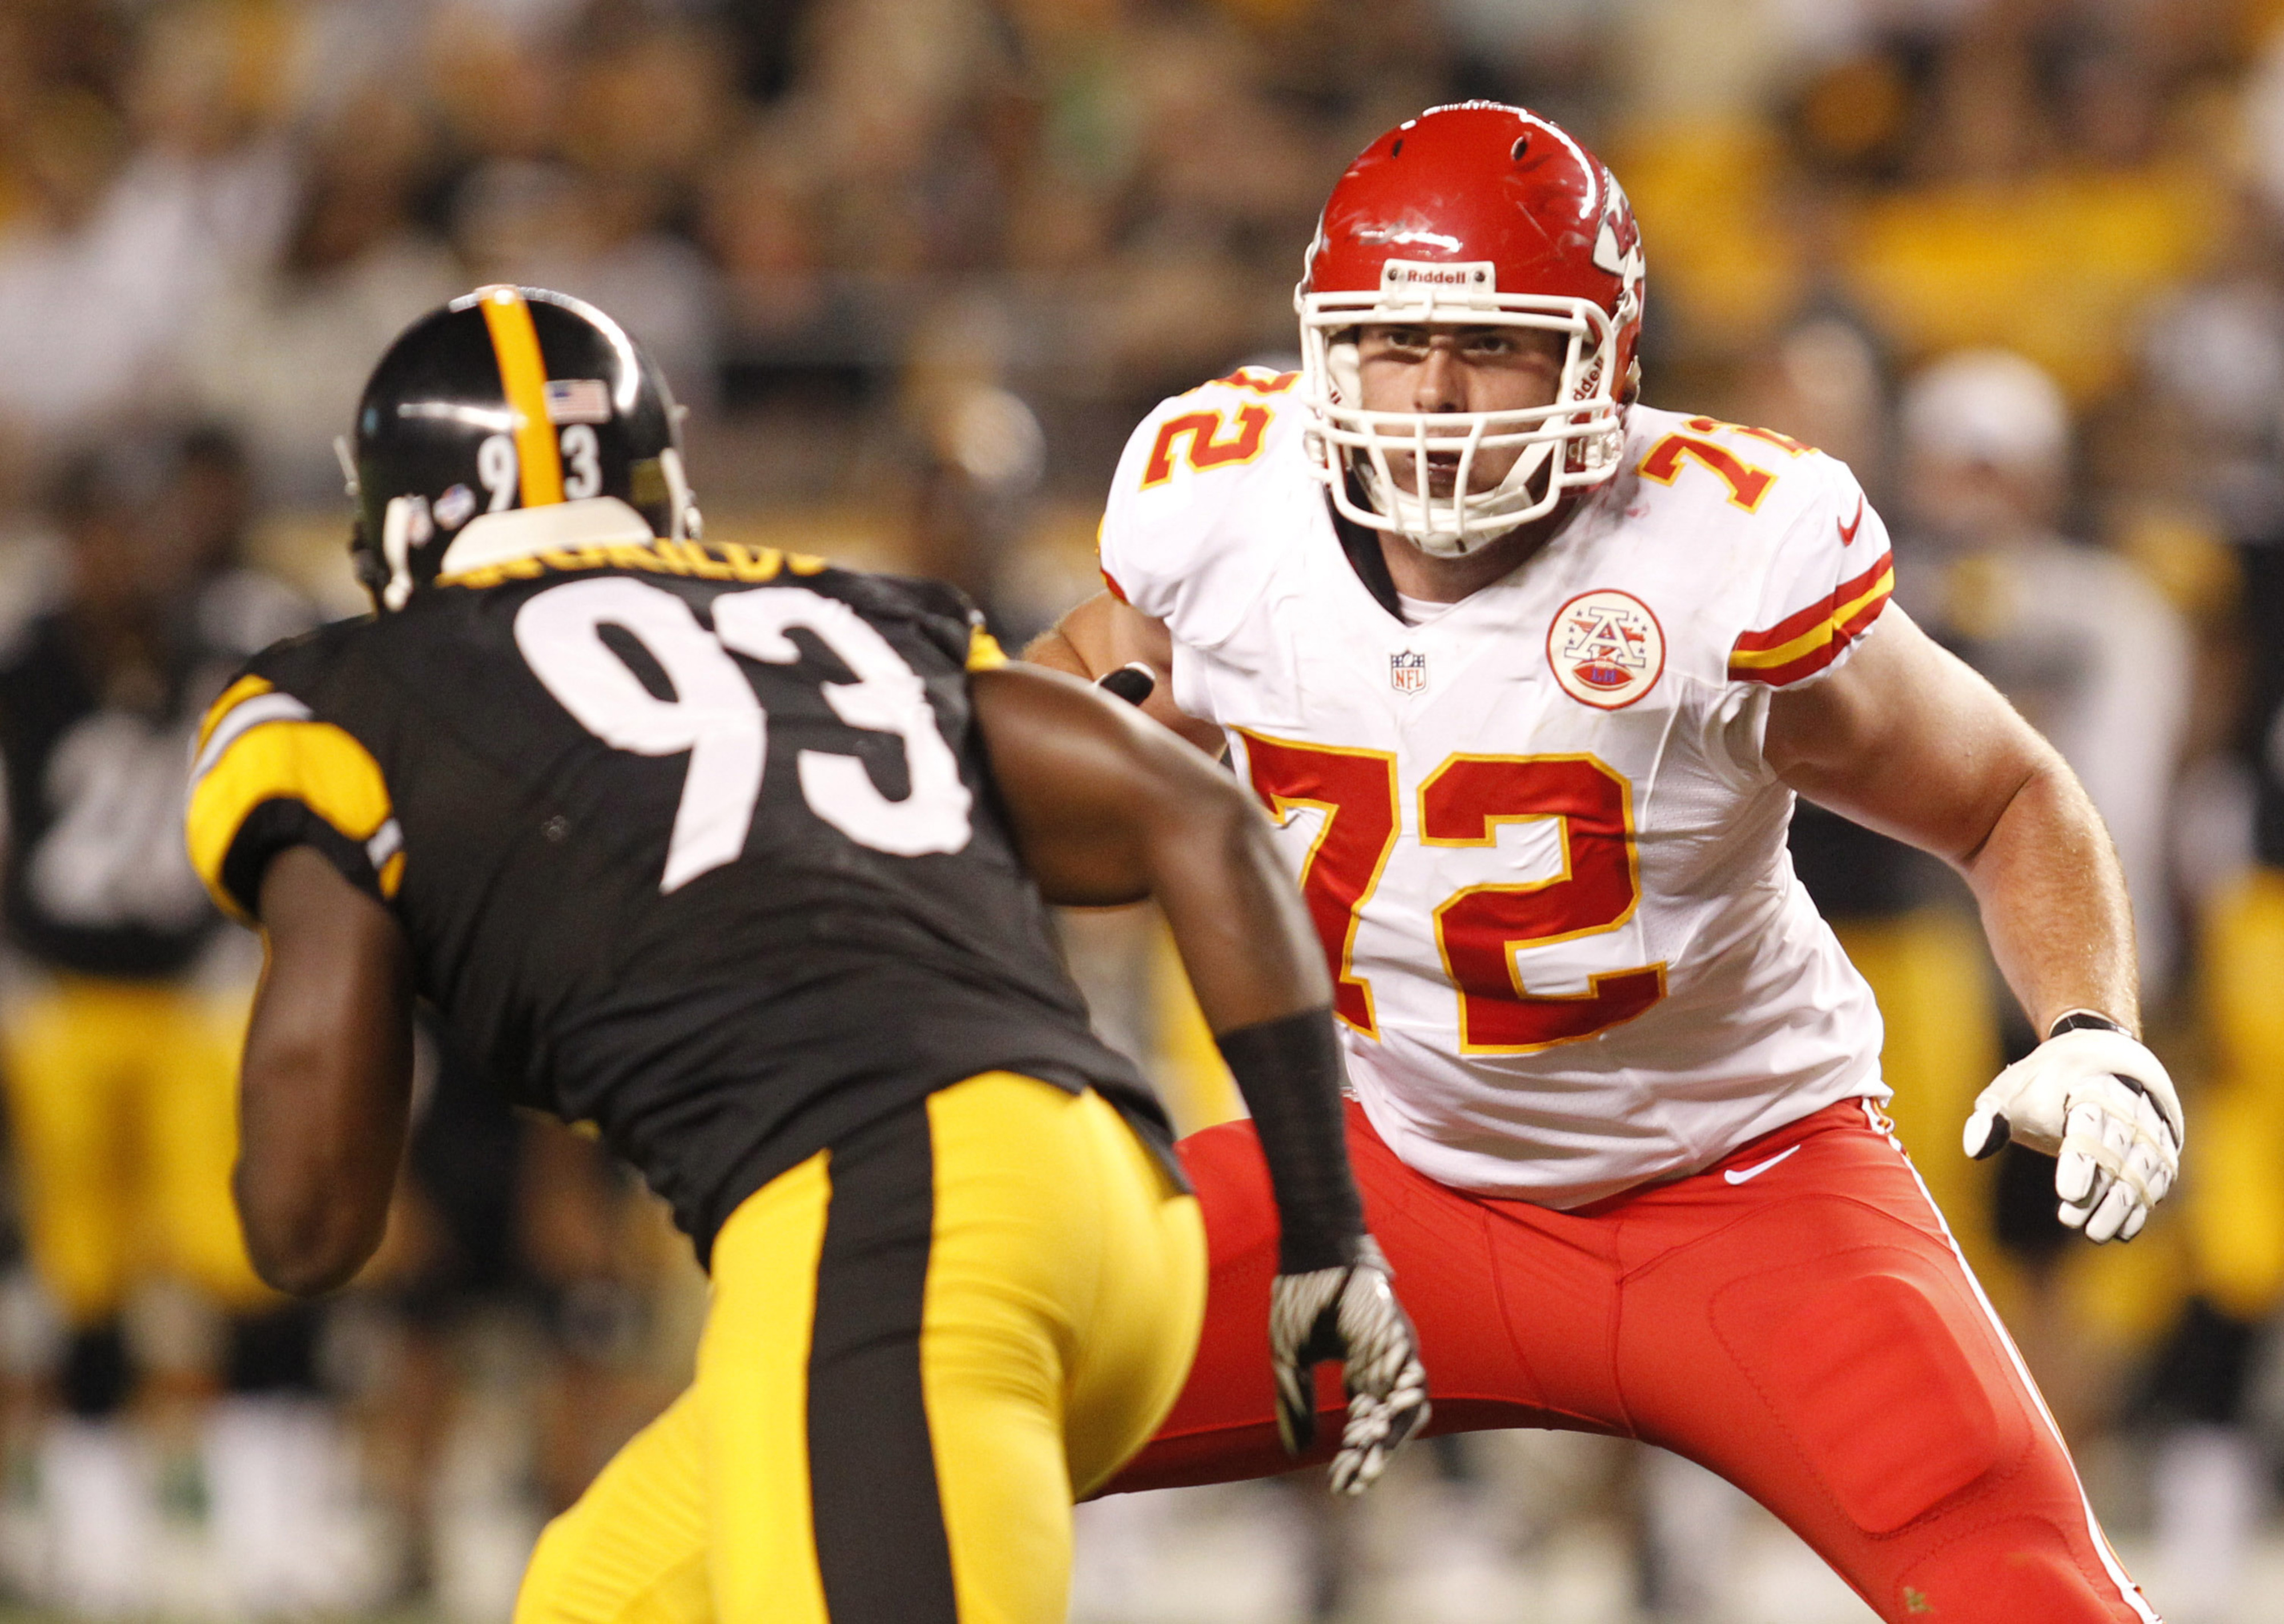 Chiefs tackle Eric Fisher